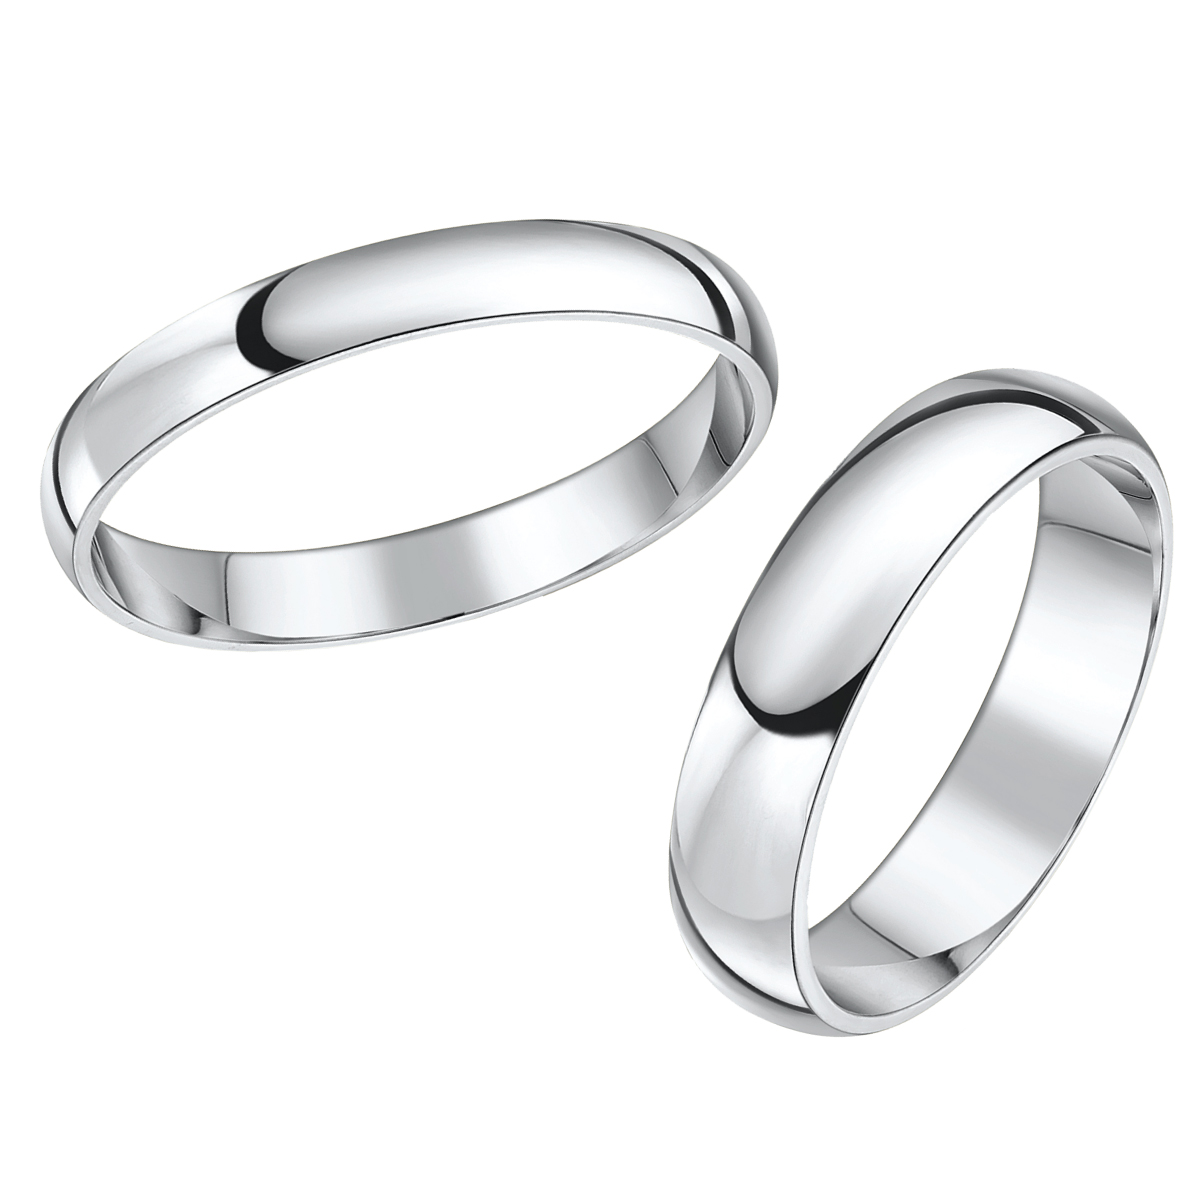 ... Tungsten Sets · Bridal Ring Sets